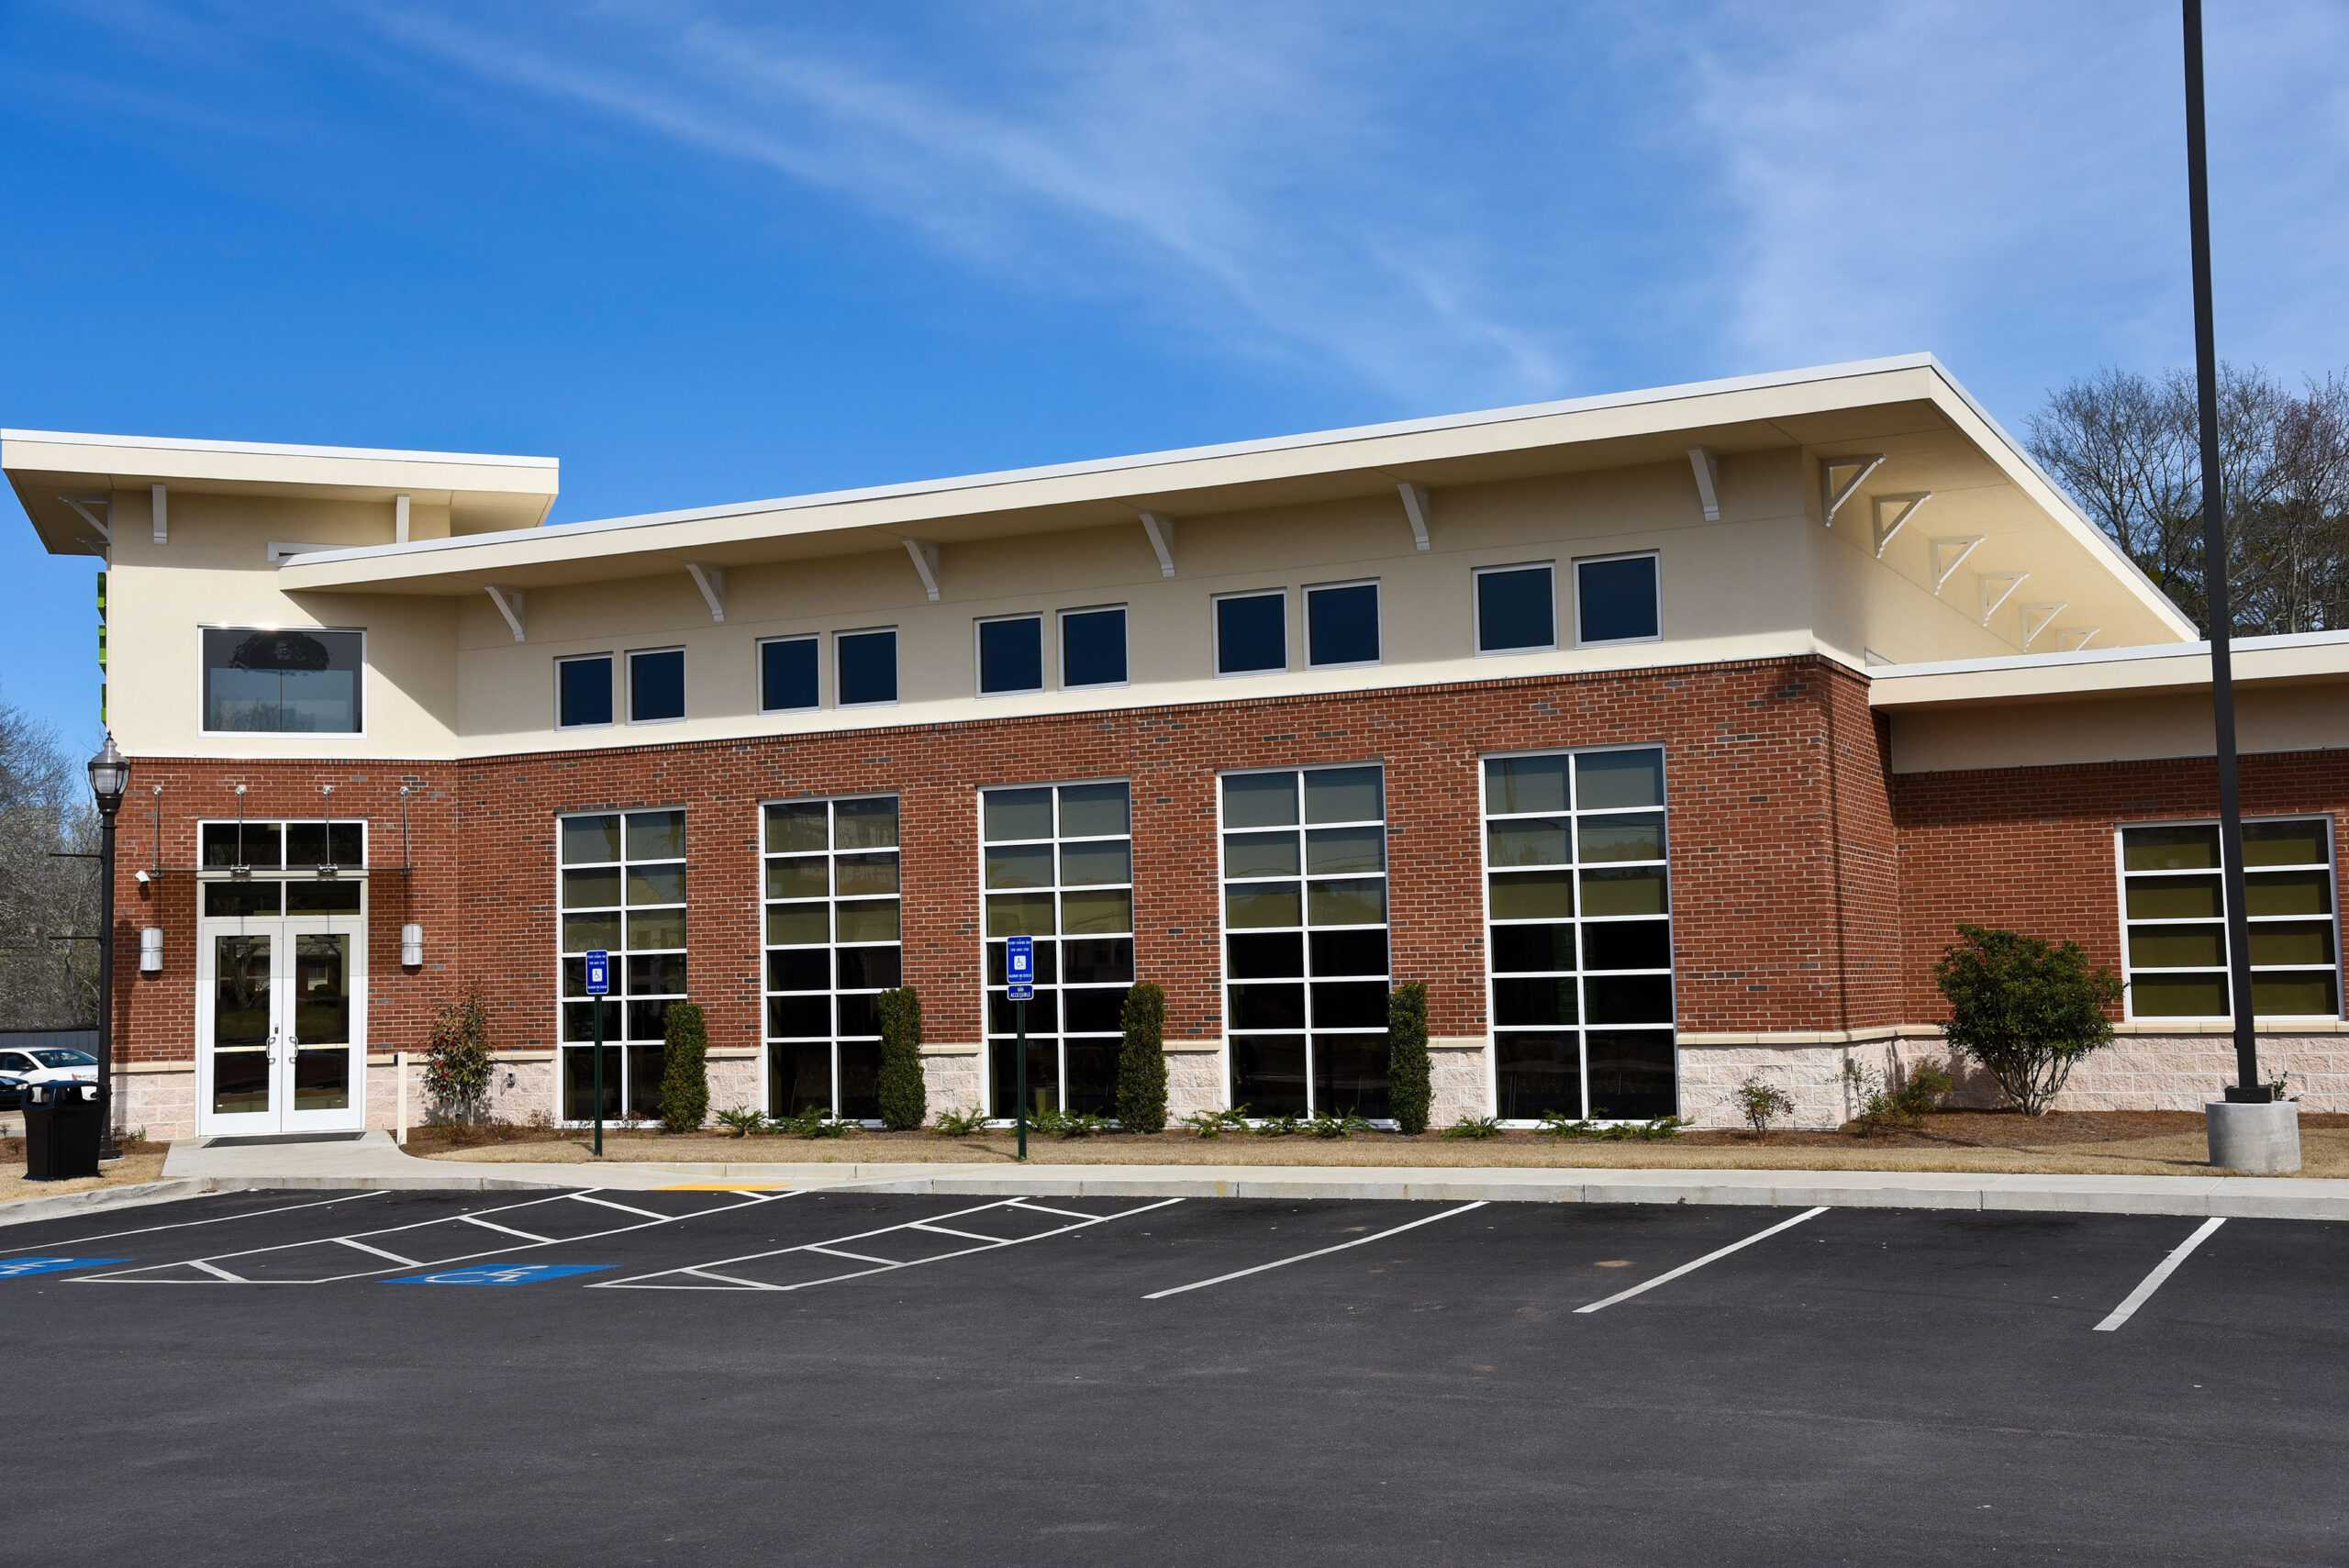 Commercial Inspections | Nashville Property Consultants intended for Property Condition Assessment Report Template